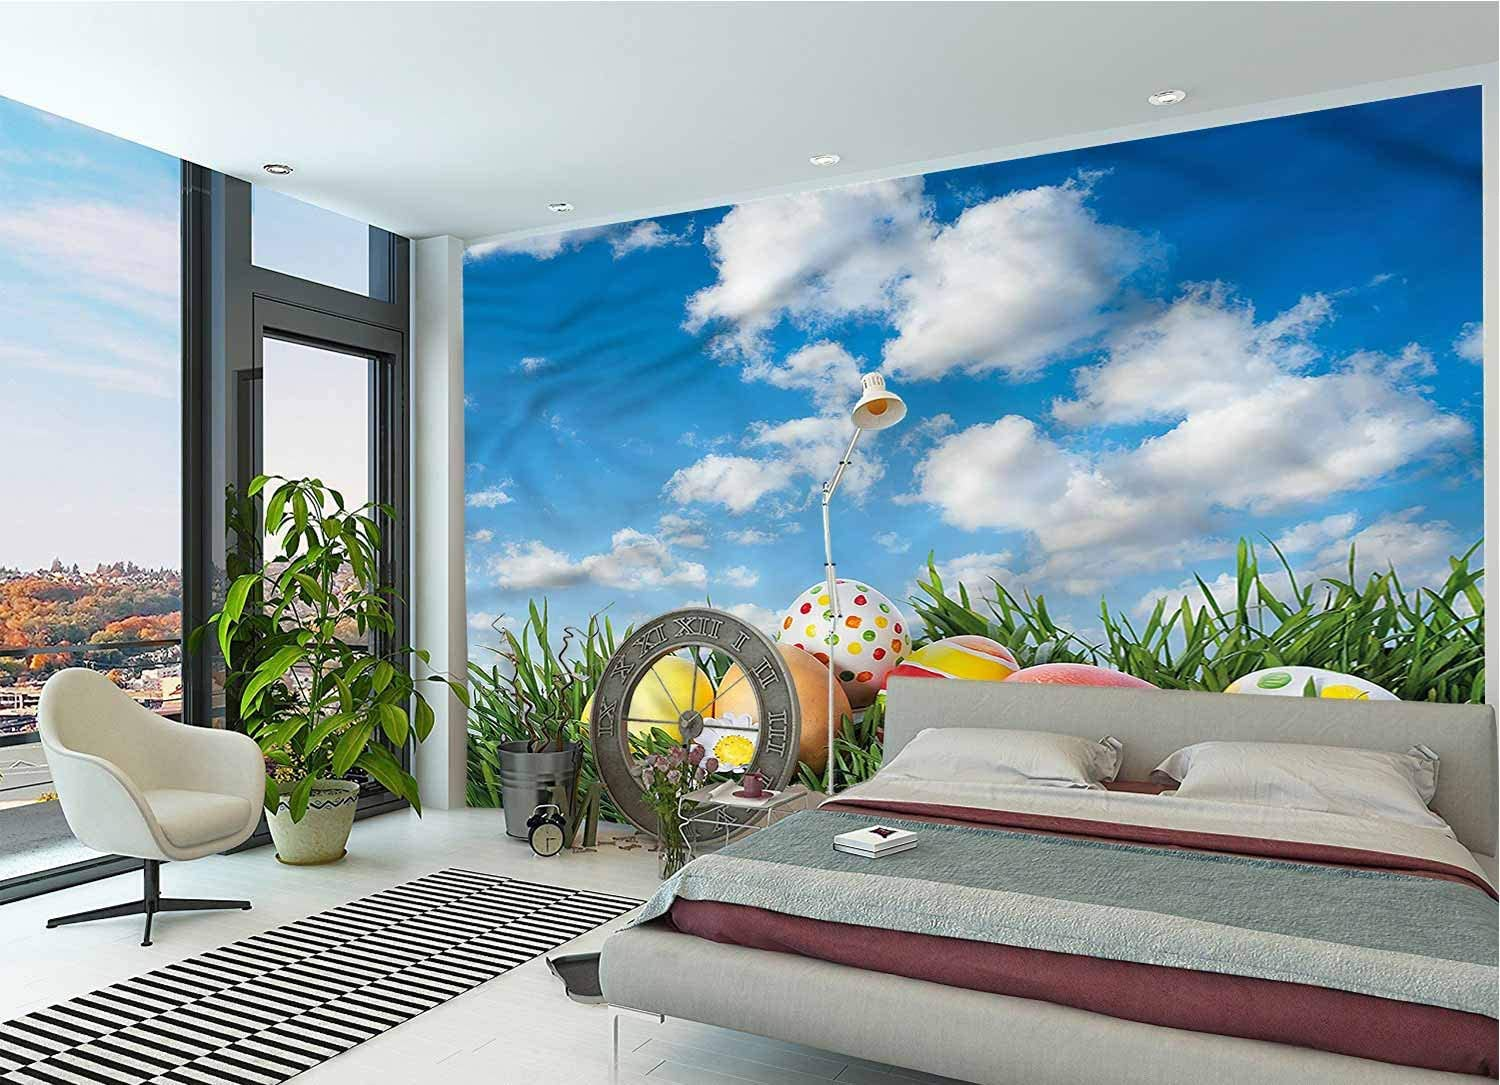 LCGGDB Easter Large Wall Mural,Eggs on Grass Open Skyline Removable Large Sticker Foil Wall Decor for Office Kids Bedroom Nursery Family Decor-144x100 Inch